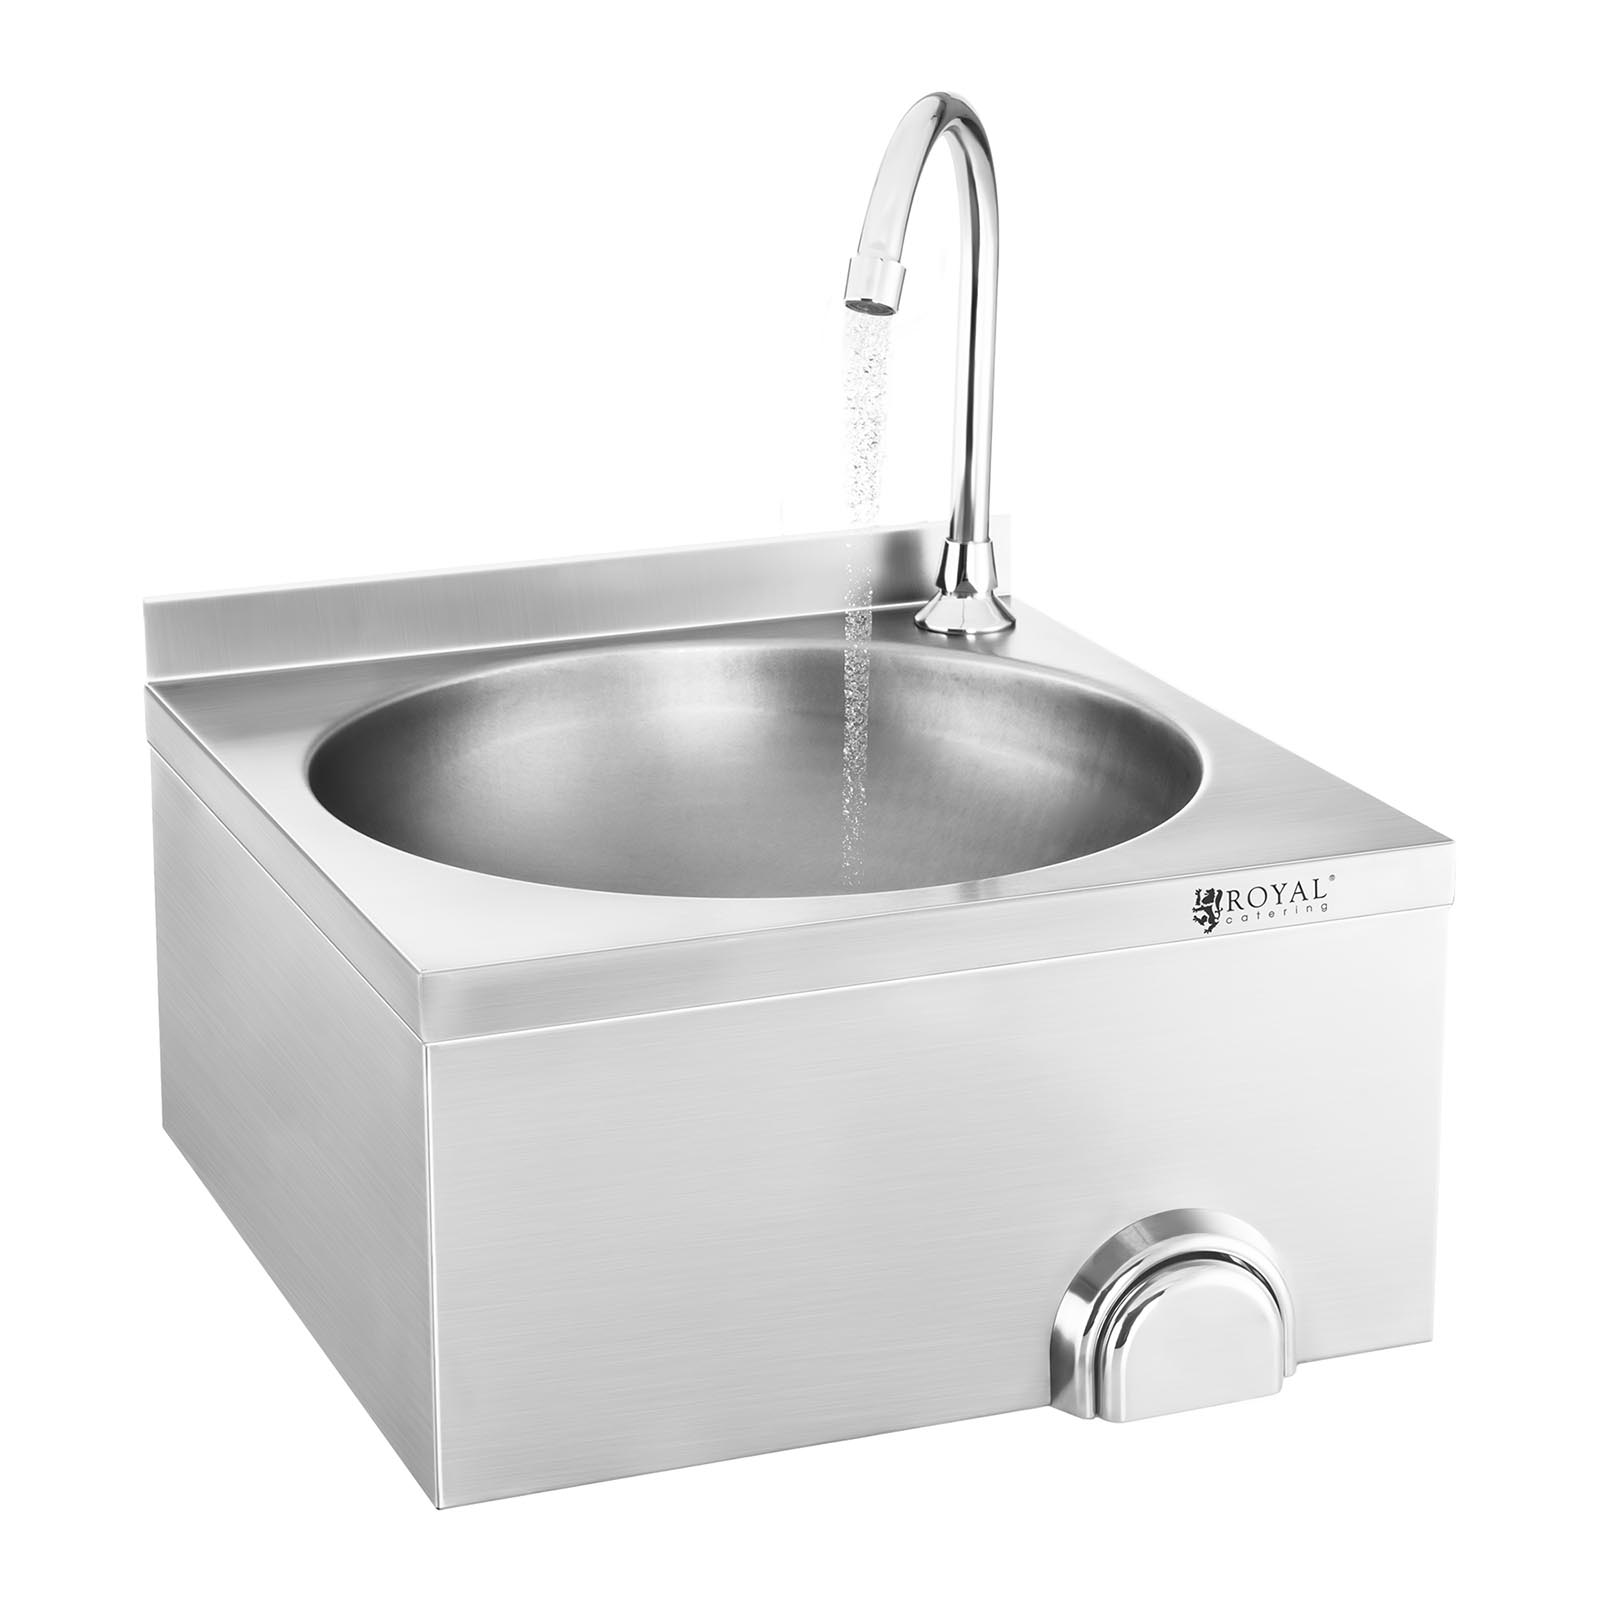 Washbasin Sink Catering Hand Free Sink Knee Operated Highly Hygenic Wash